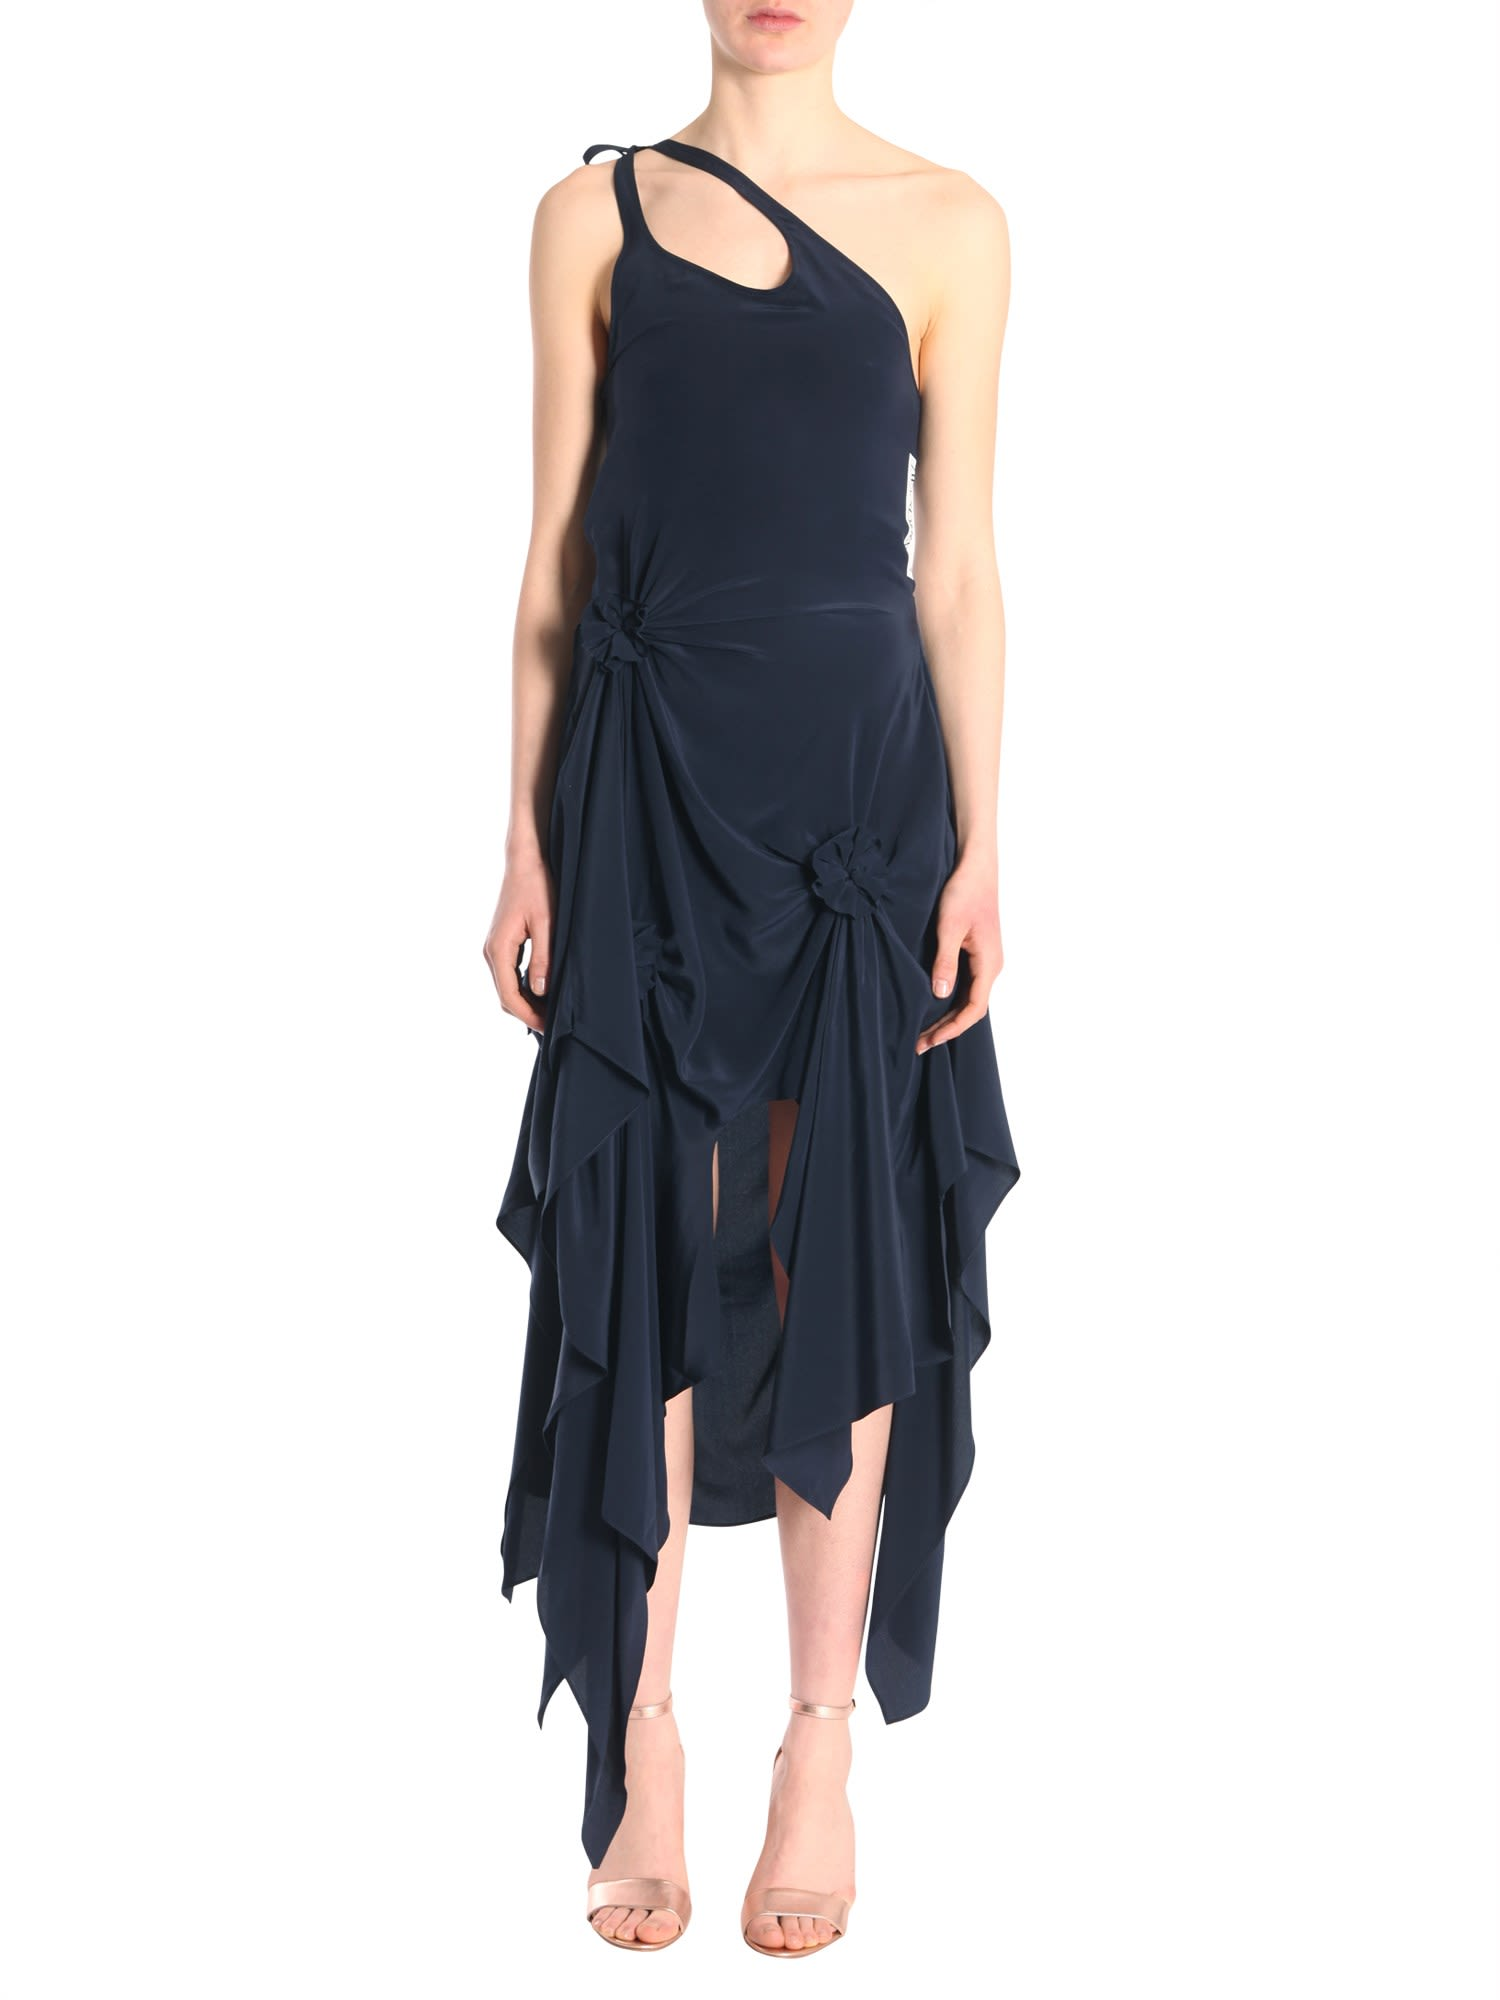 J.W. Anderson Asymmetric One Shoulder Dress